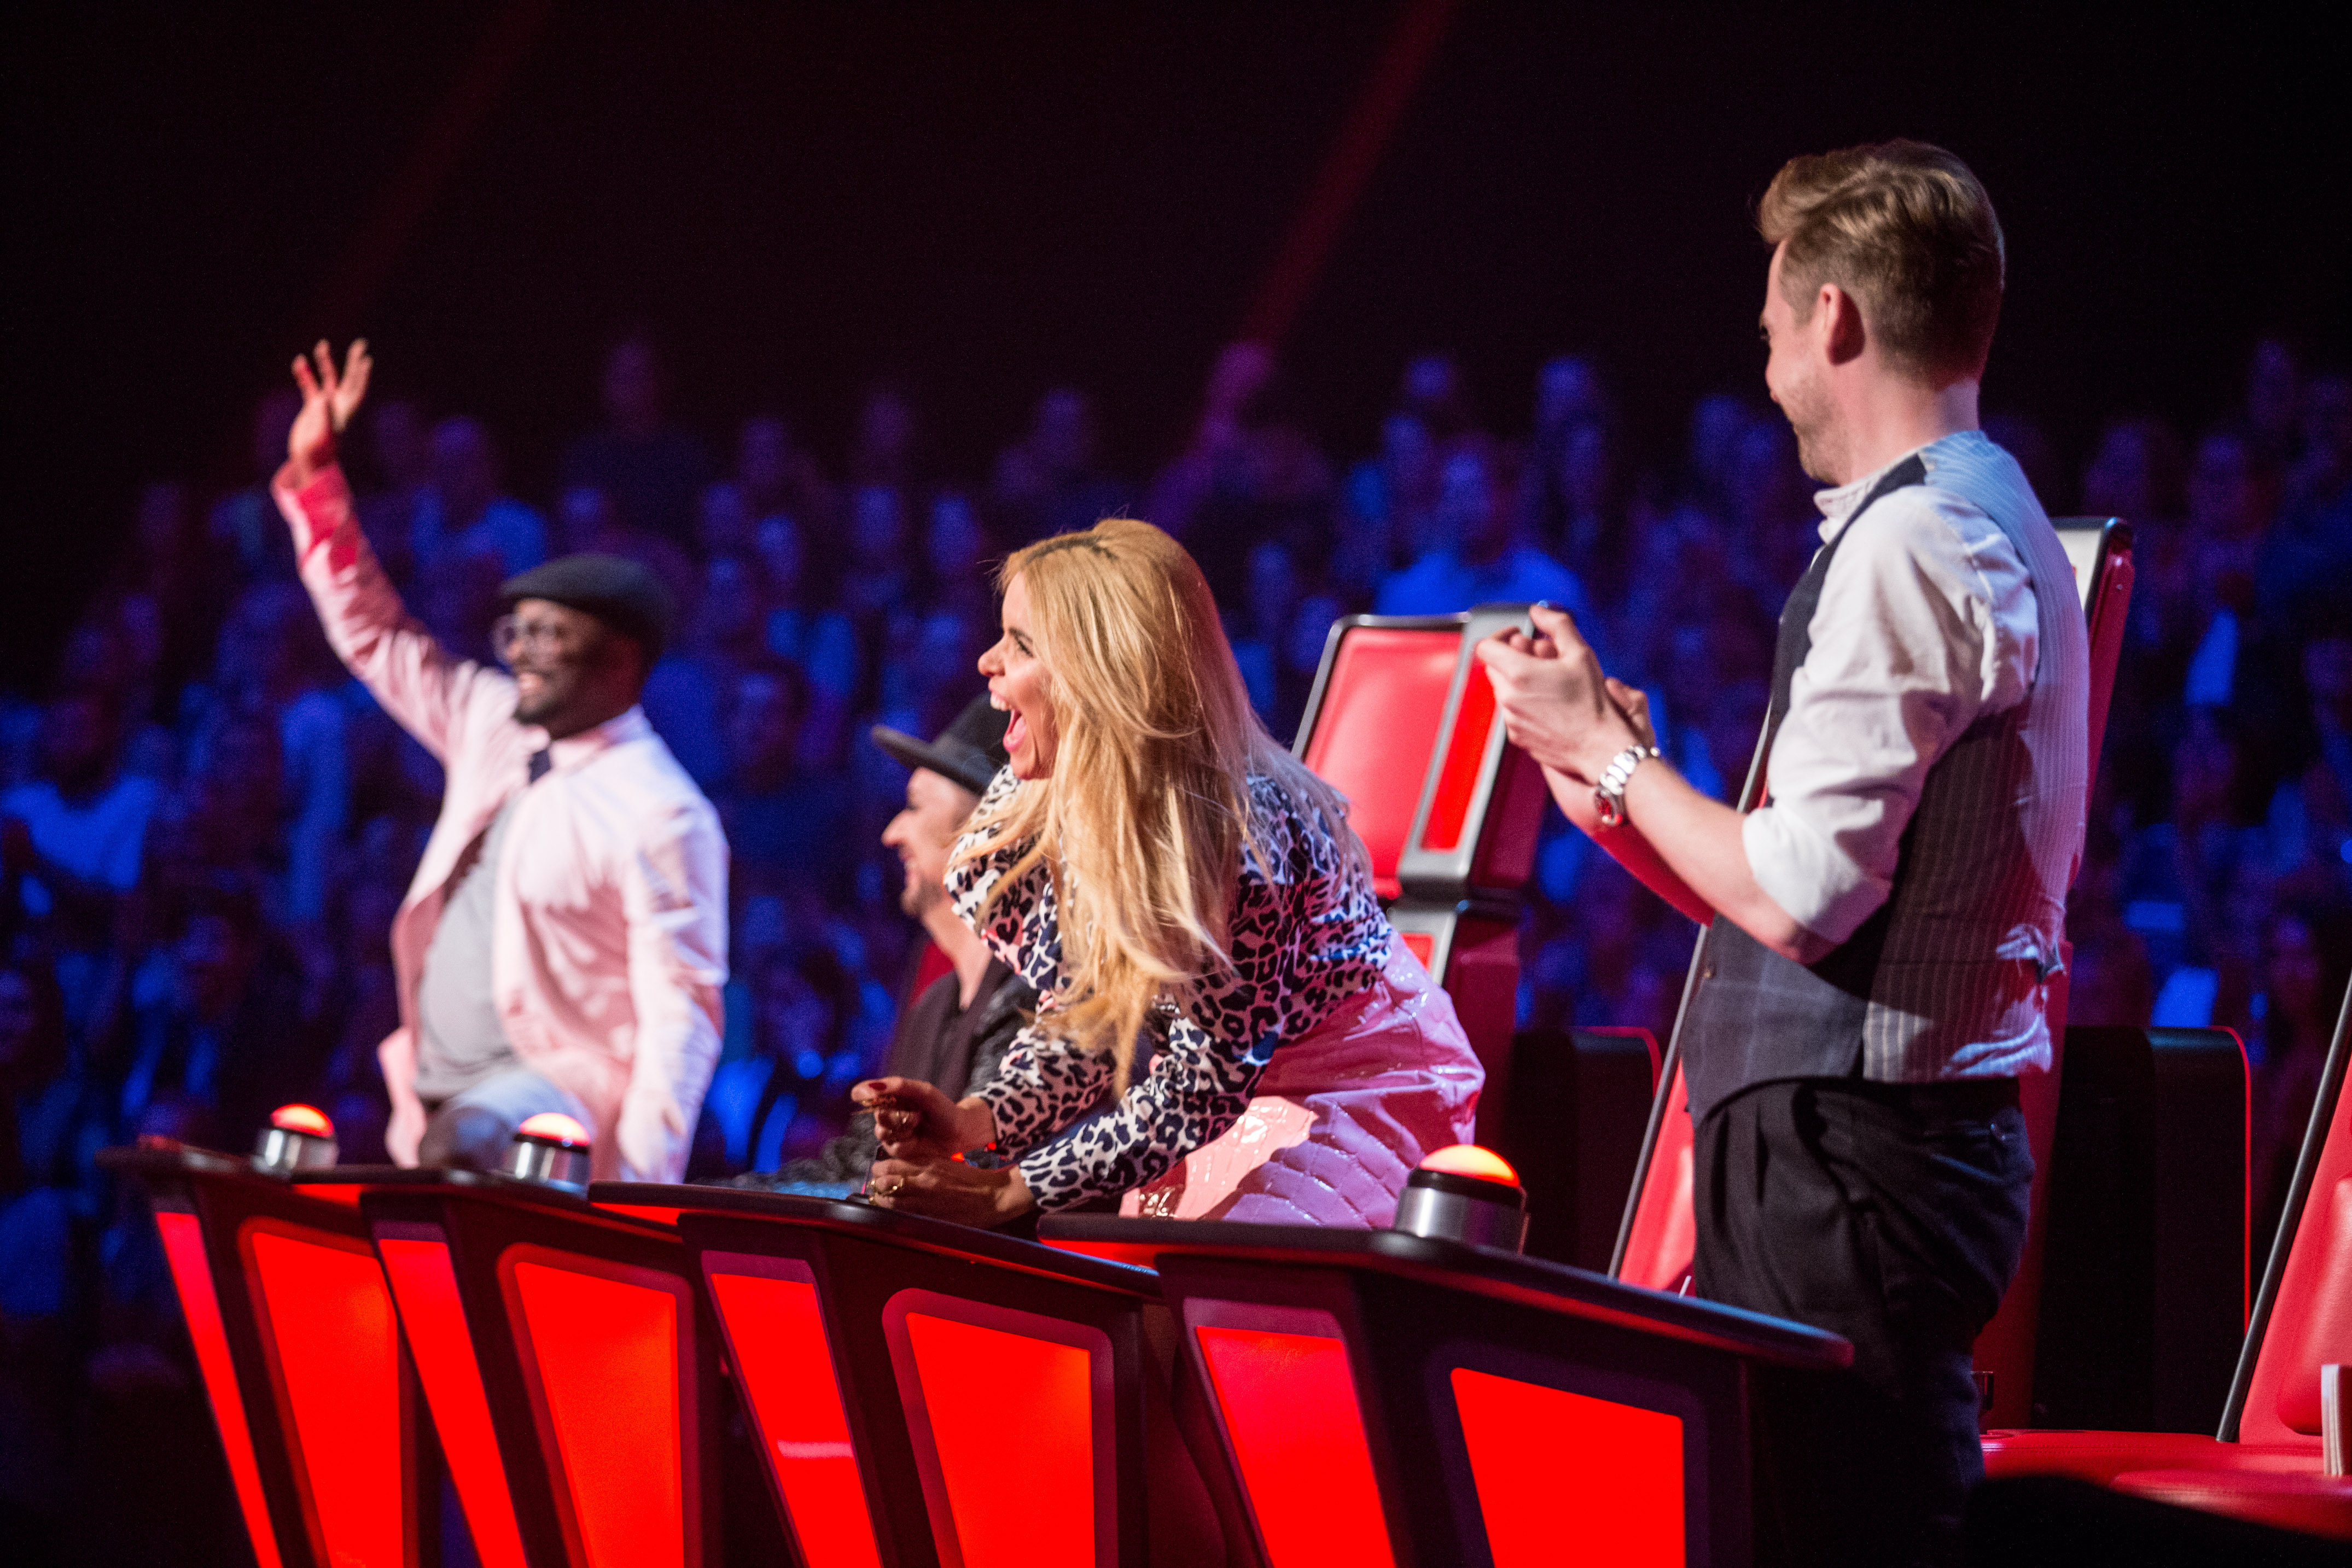 The Voice 2016: 15 things we noticed during the second blind auditions